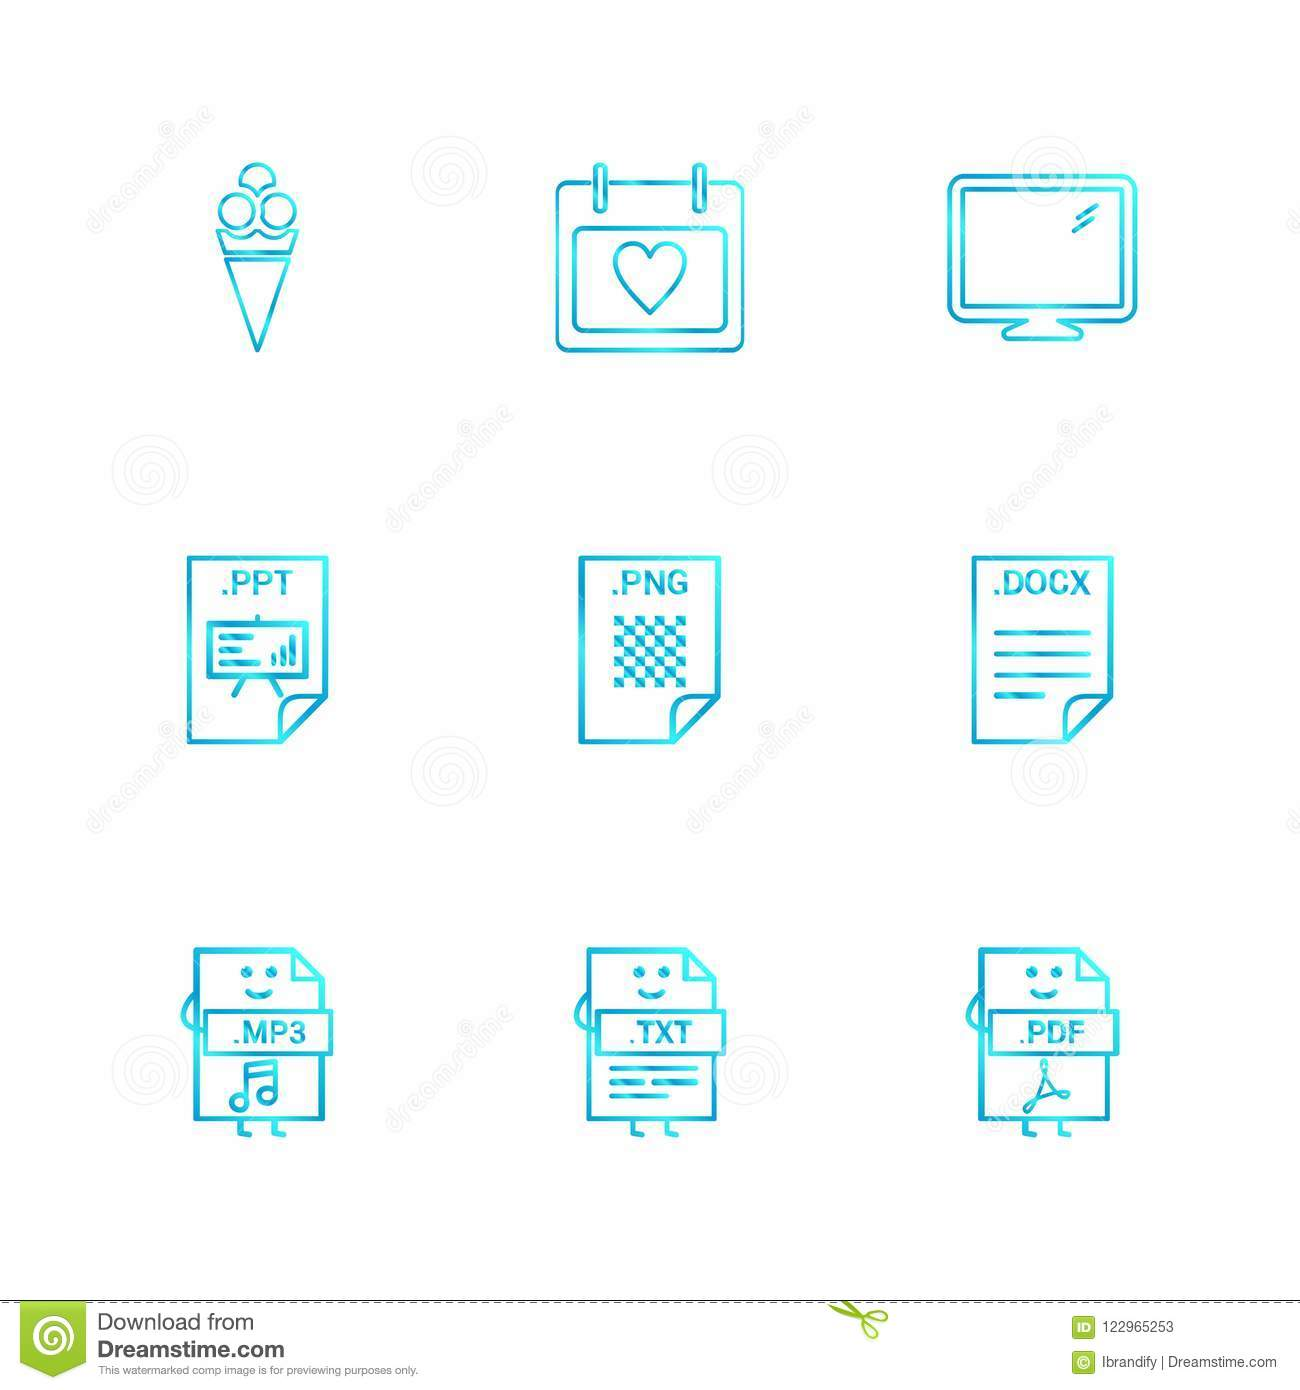 Calendrier Icone Png.Cone Calendrier Moniteur Ppt Png Docx Mp3 Mp4 Txt